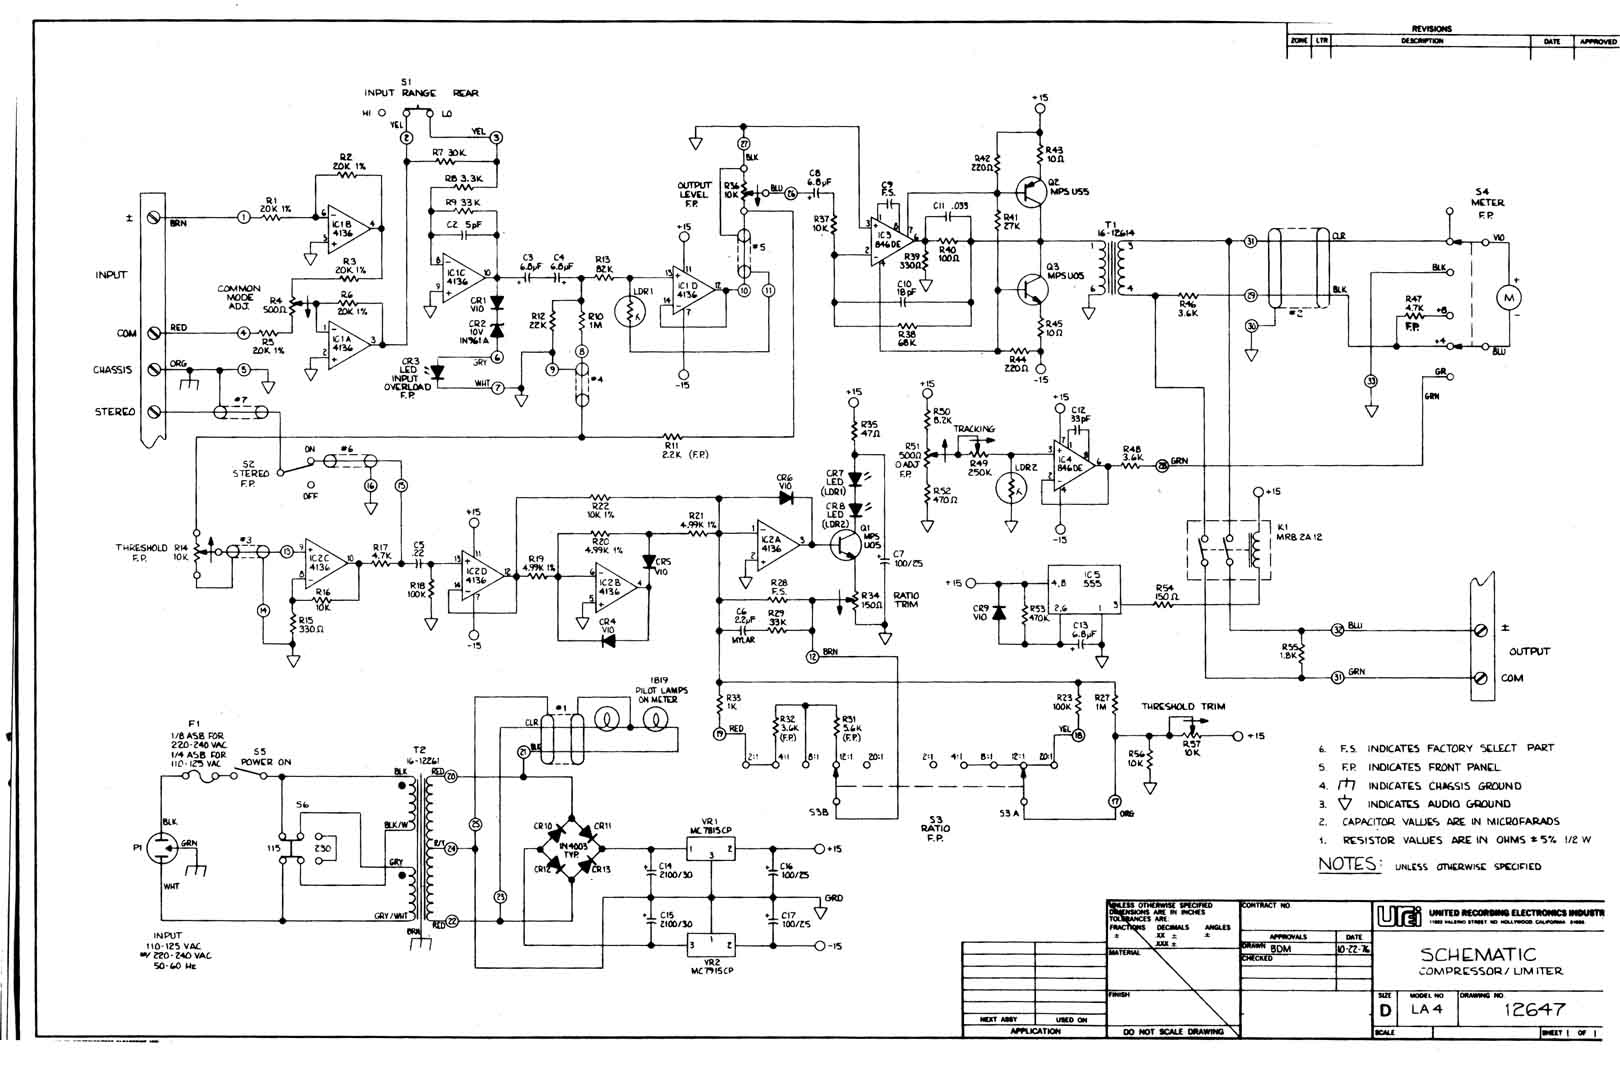 Shure sm58 wiring diagram wiring diagrams schematics shure 58 wiring diagram wiring diagram cb radio mic wiring yaesu ptt wiring diagram luxury shure sm58 wiring diagram model wiring diagram ideas wiring color asfbconference2016 Image collections